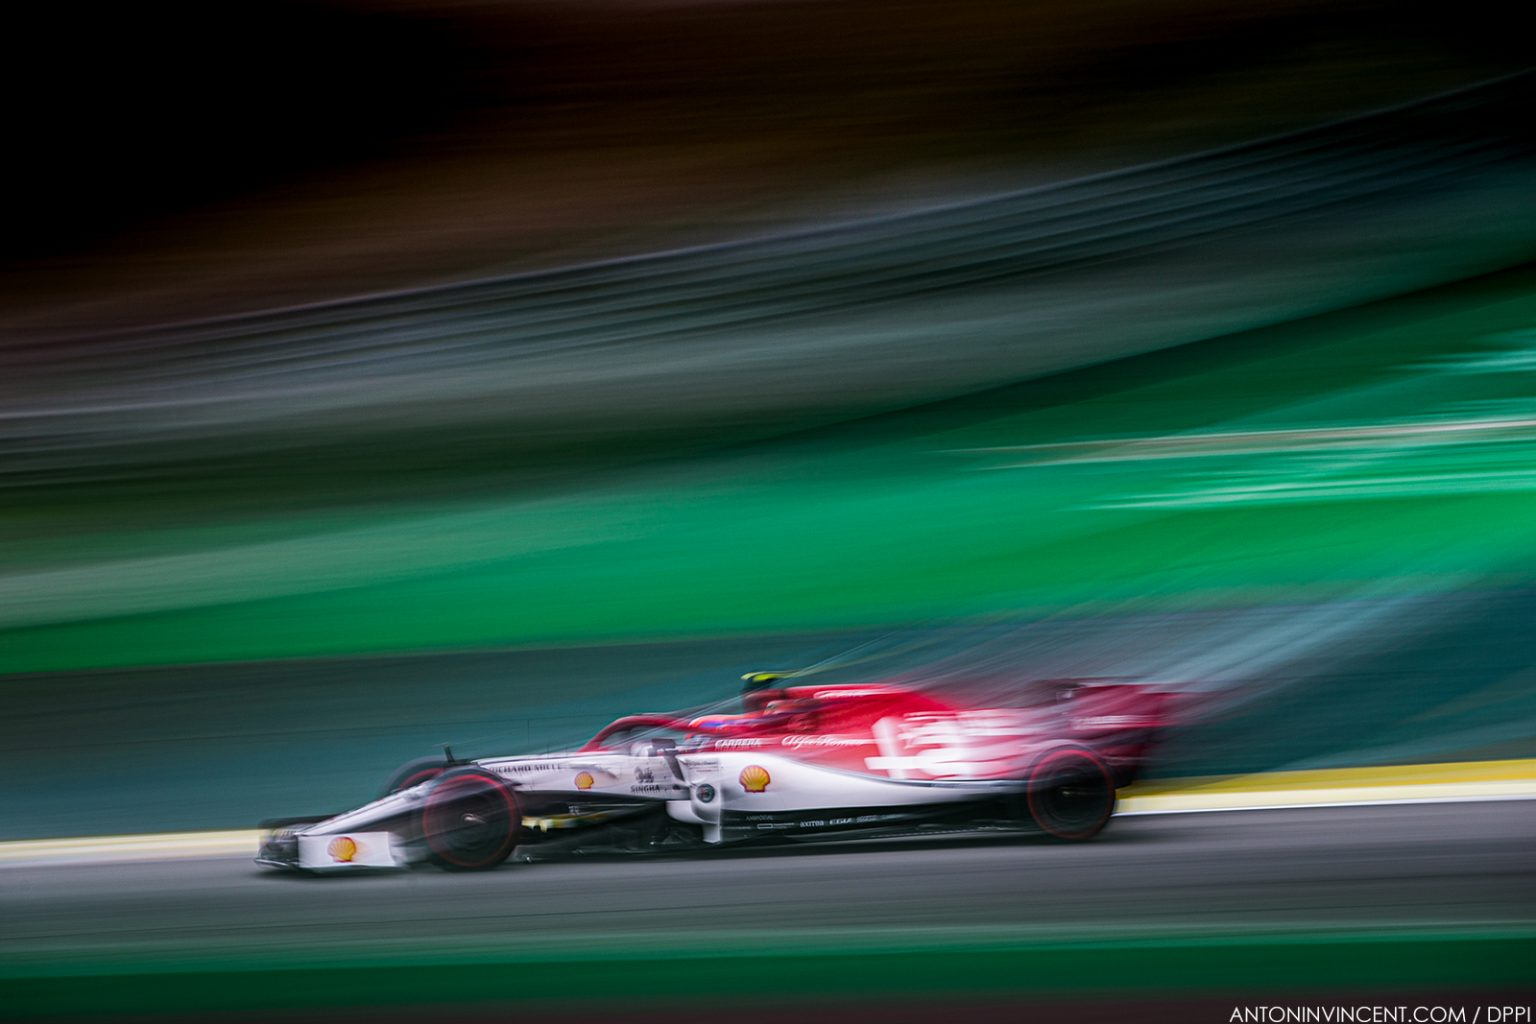 99 GIOVINAZZI Antonio (ita), Alfa Romeo Racing C38, action during the 2019 Formula One World Championship, Brazil Grand Prix from November 15 to 17 in Sao Paulo, Brazil - Photo Antonin Vincent / DPPI